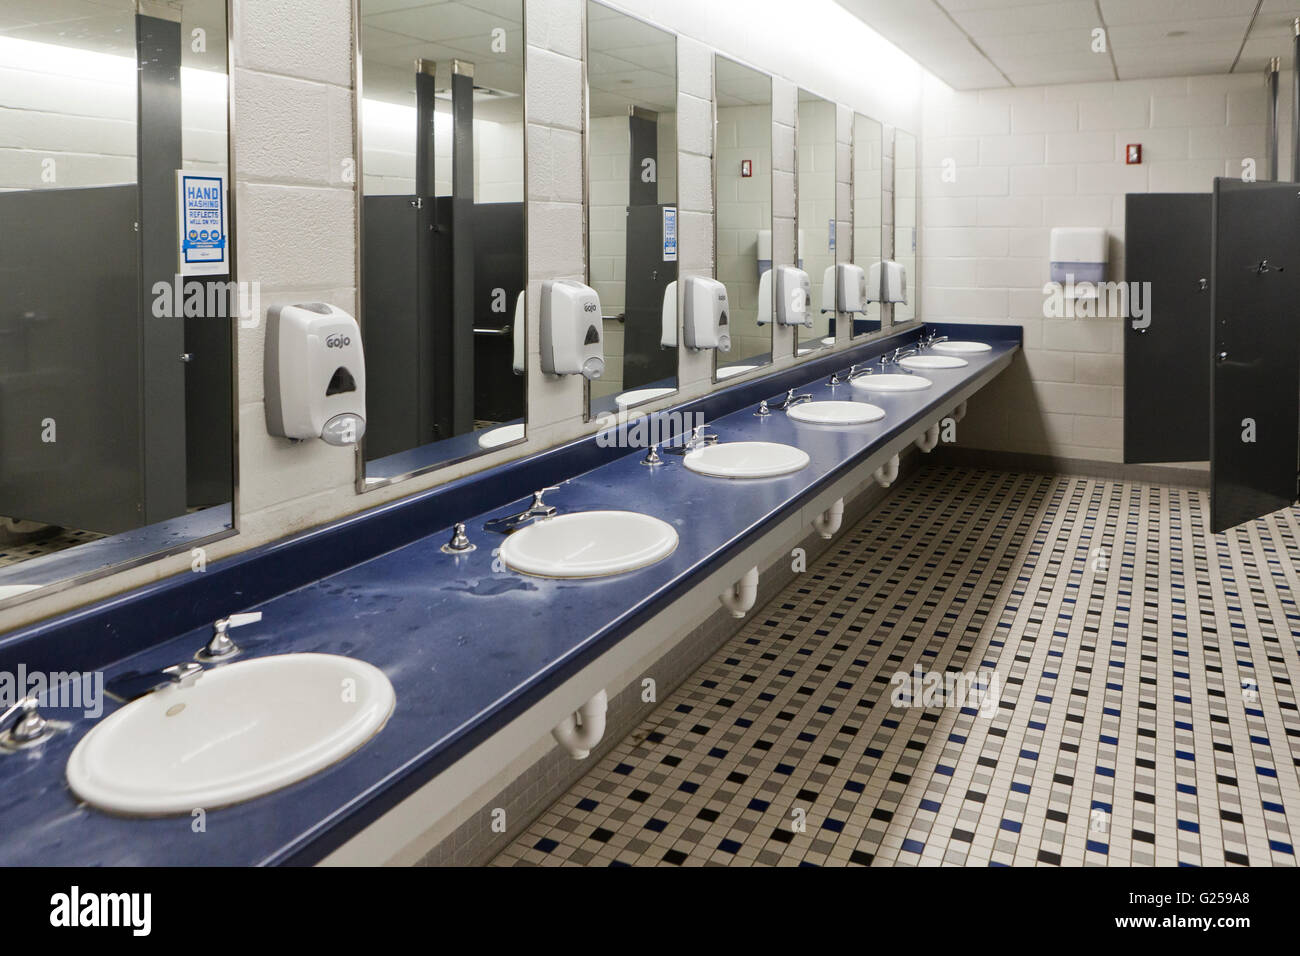 Mens room sinks - USA - Stock Image